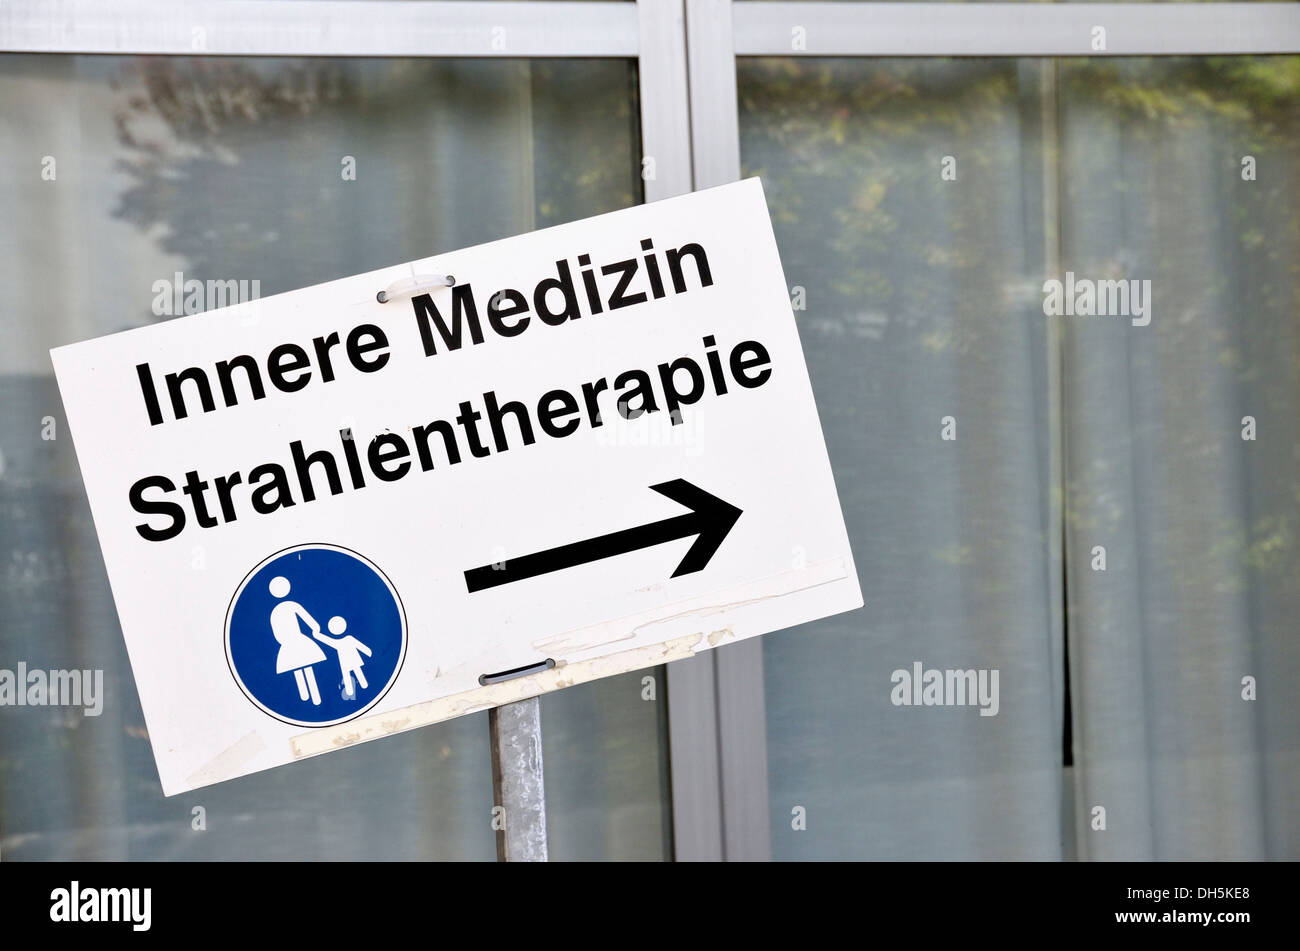 Sign to Innere Medizin and Strahlentherapie, German for 'internal medicine' and 'radiation therapy', Universitaetsklinikum - Stock Image